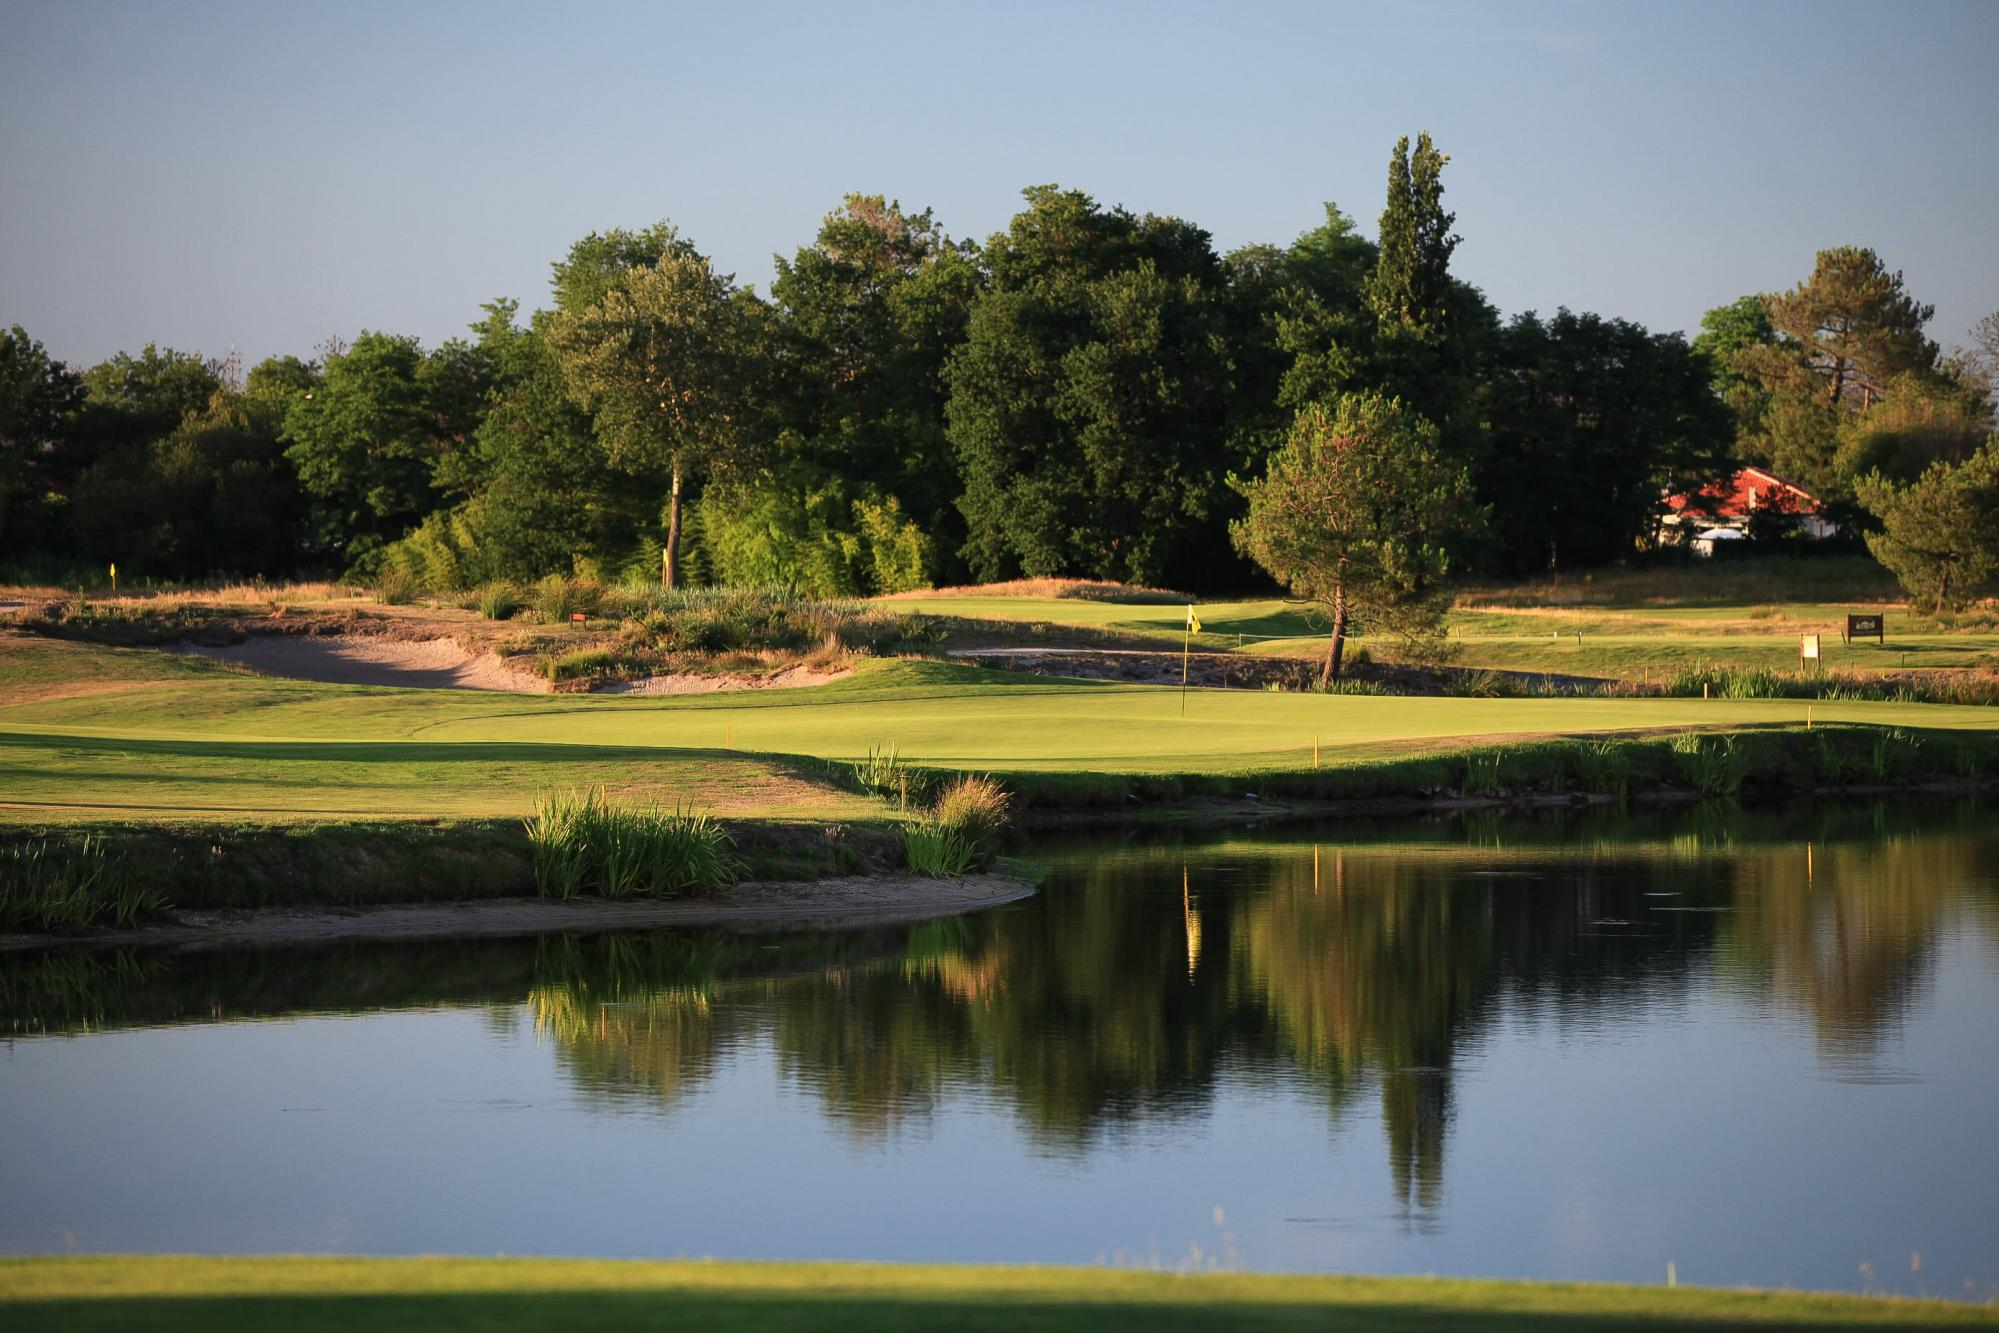 Medoc Golf Course